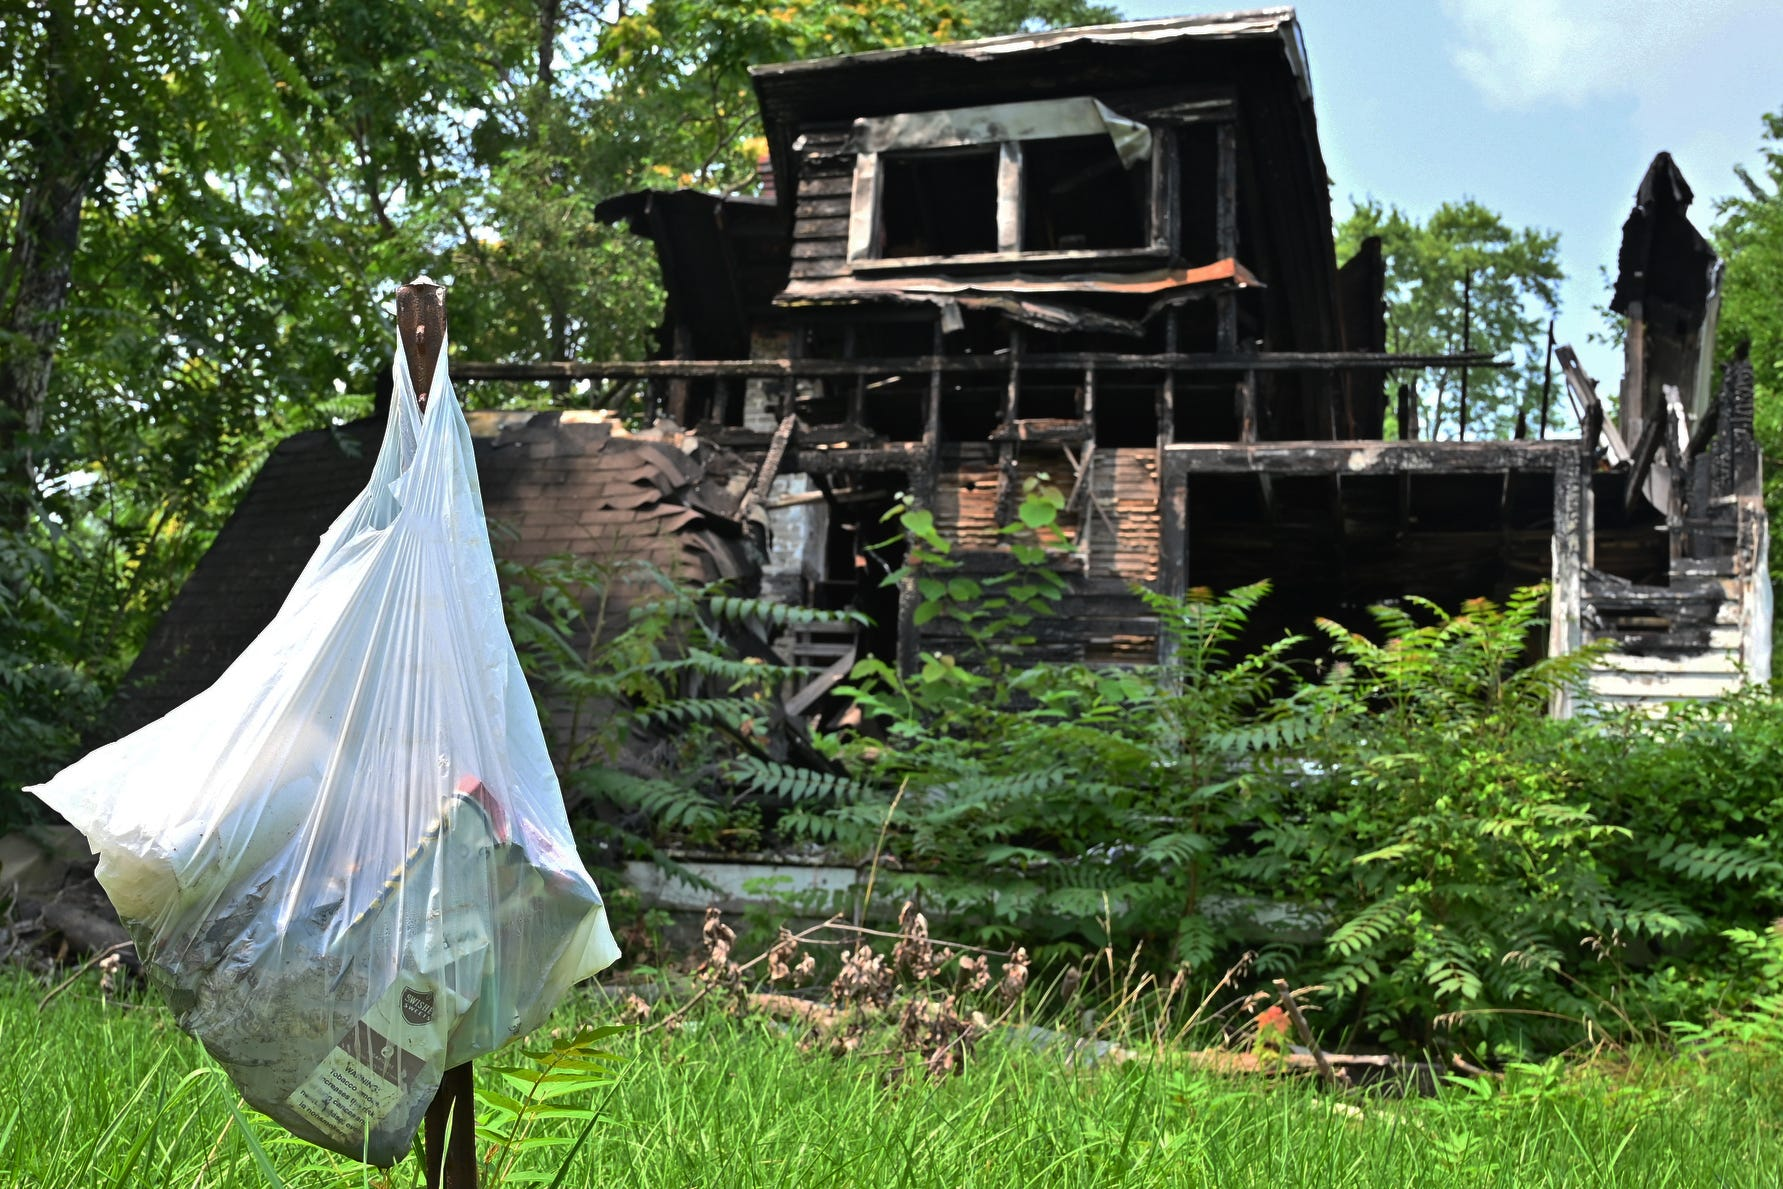 A home which has been vacant for over two years, according to neighbors, occupies space along Crown Avenue in Dayton, Ohio on Tuesday, July 20, 2021. The local government in Dayton, Ohio wants to demolish abandoned homes with money gained from the American Rescue Plan, and wonders if the federal government will allow their procedures.